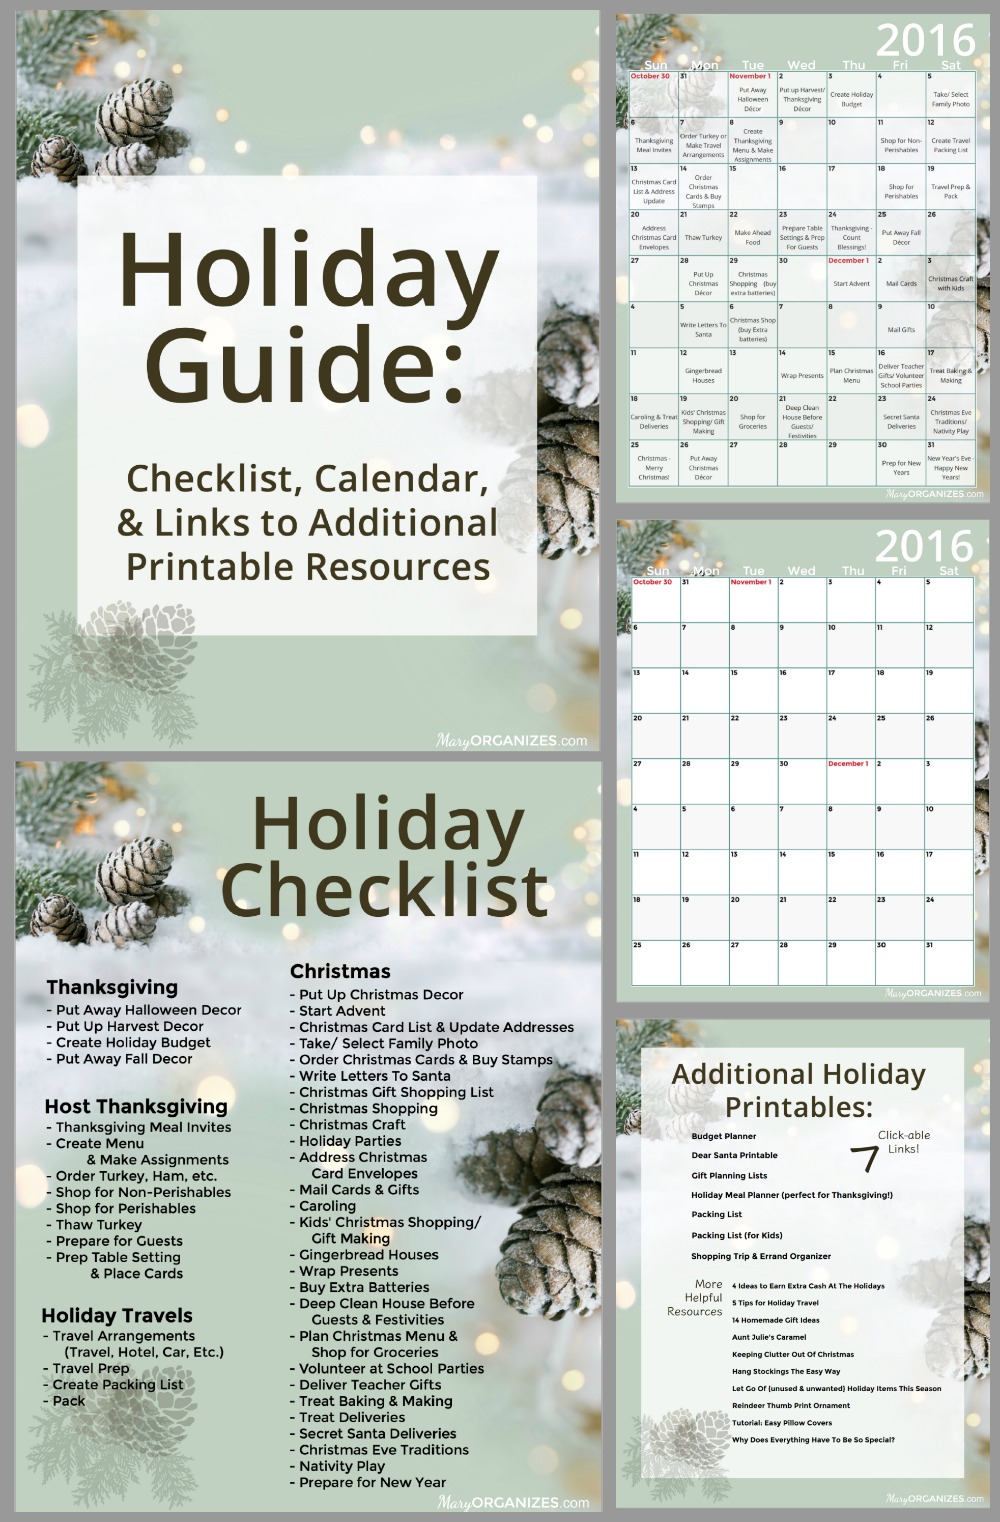 2016-holiday-guide-from-maryorganizes-v